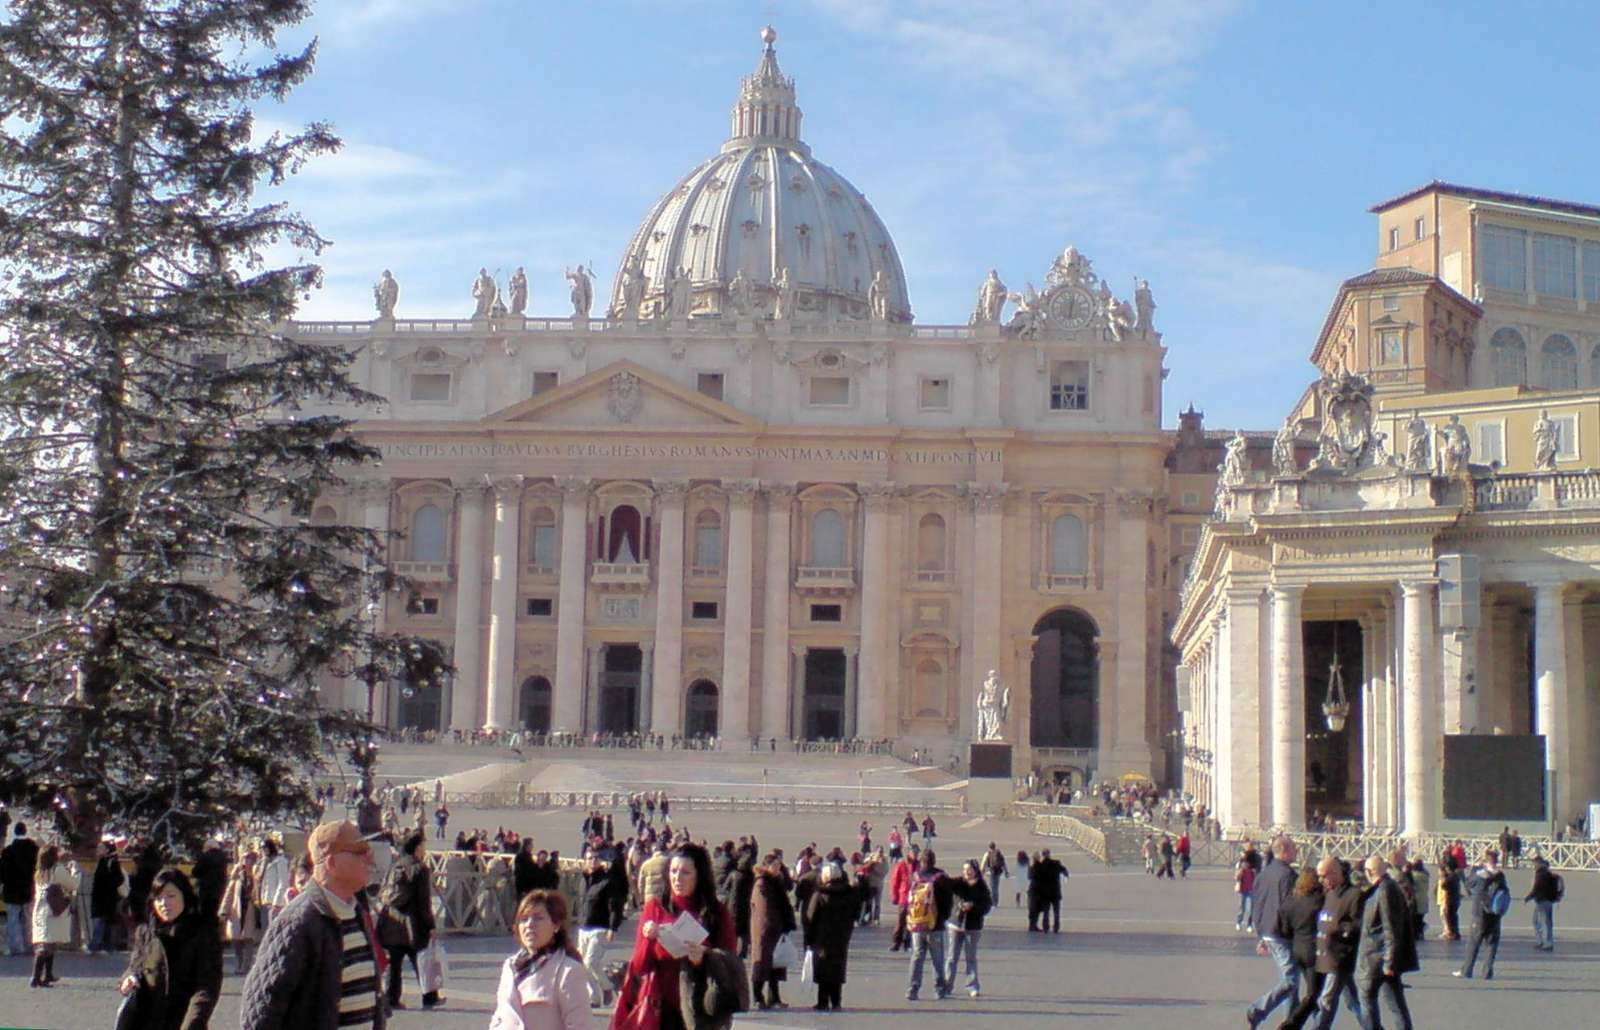 The Christmas tree in front of St. Peter's Basilica